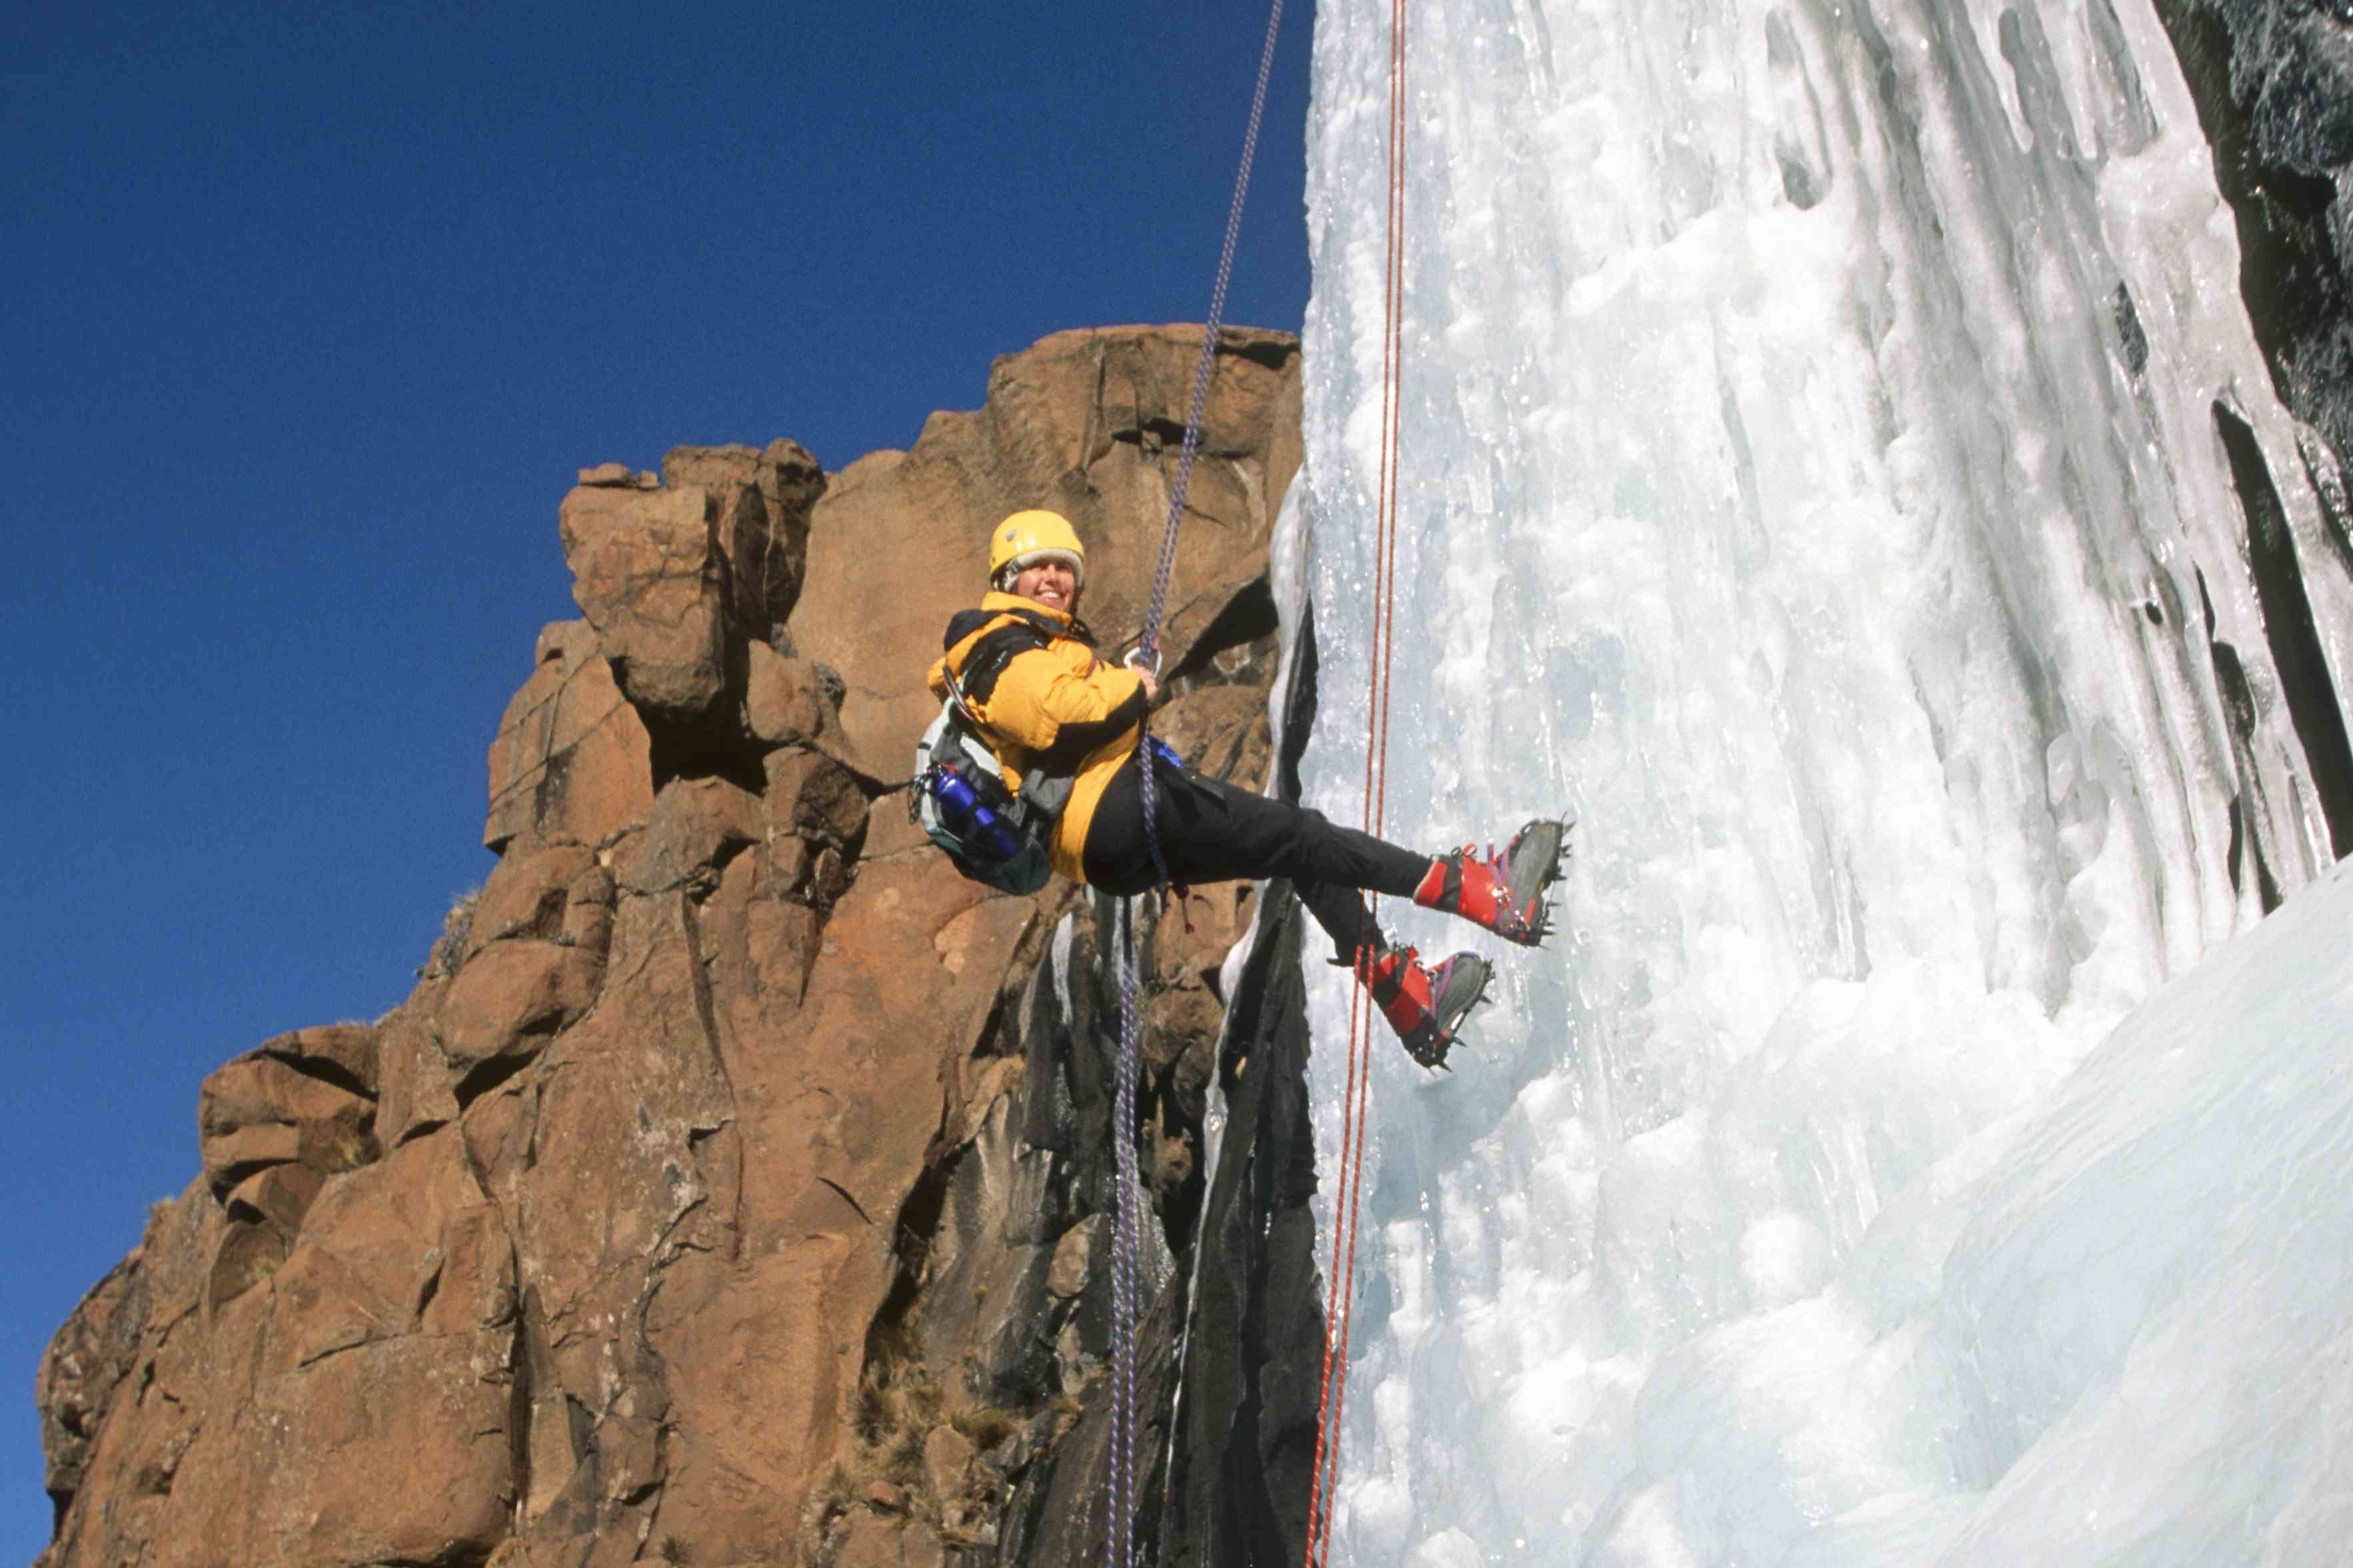 Smiling climber on frozen waterfall next to red rock formation